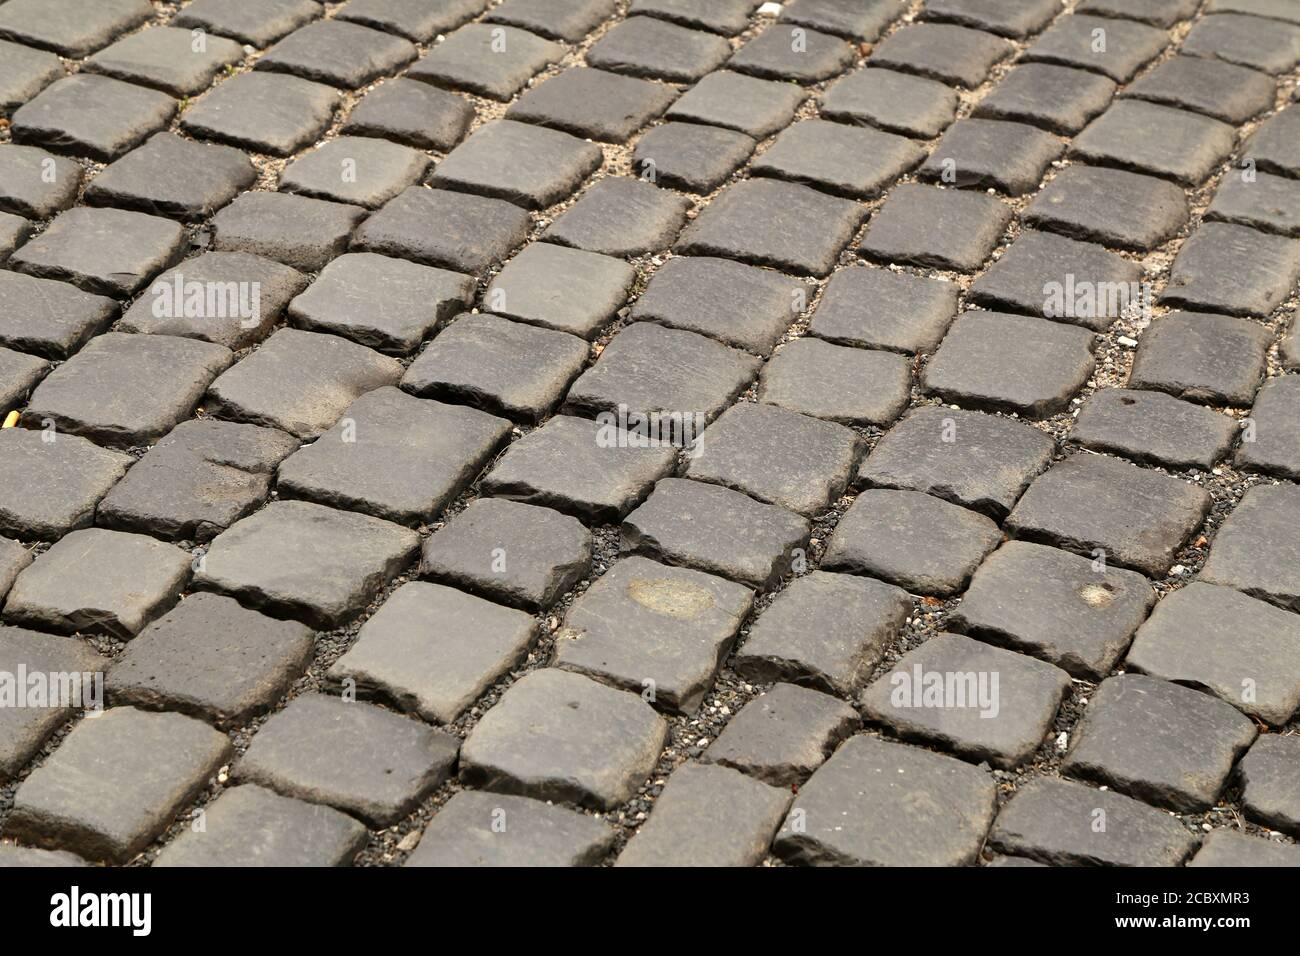 Abstract background of old cobblestone pavement close-up Stock Photo